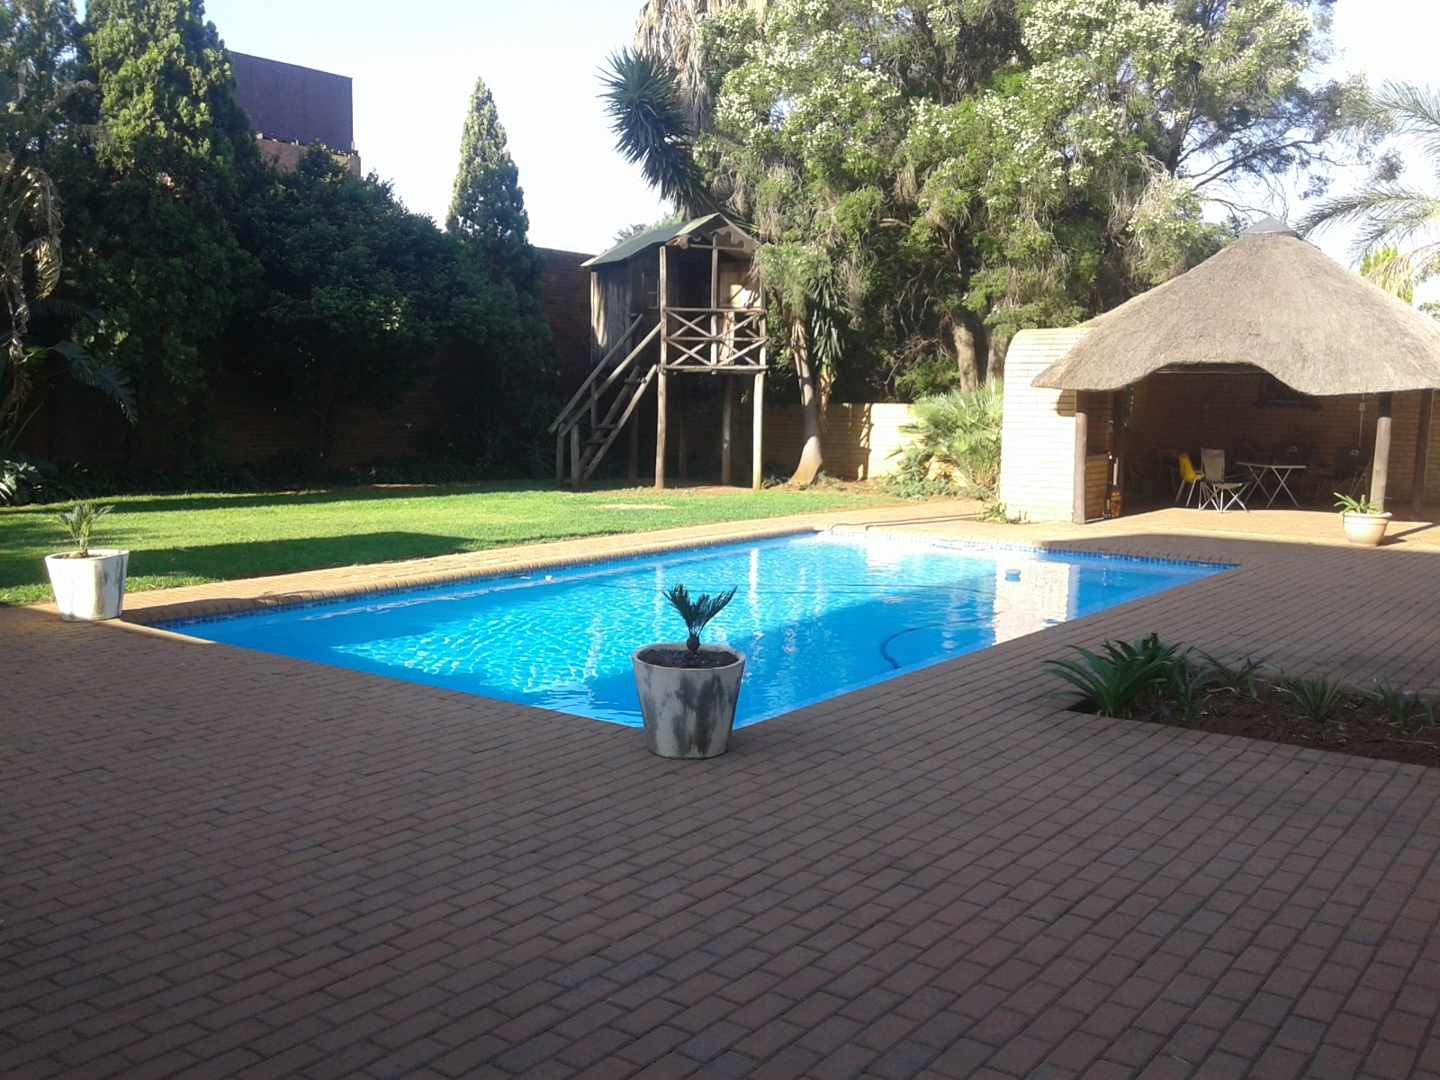 Atherstone Guest House Vanderbijlpark South Africa